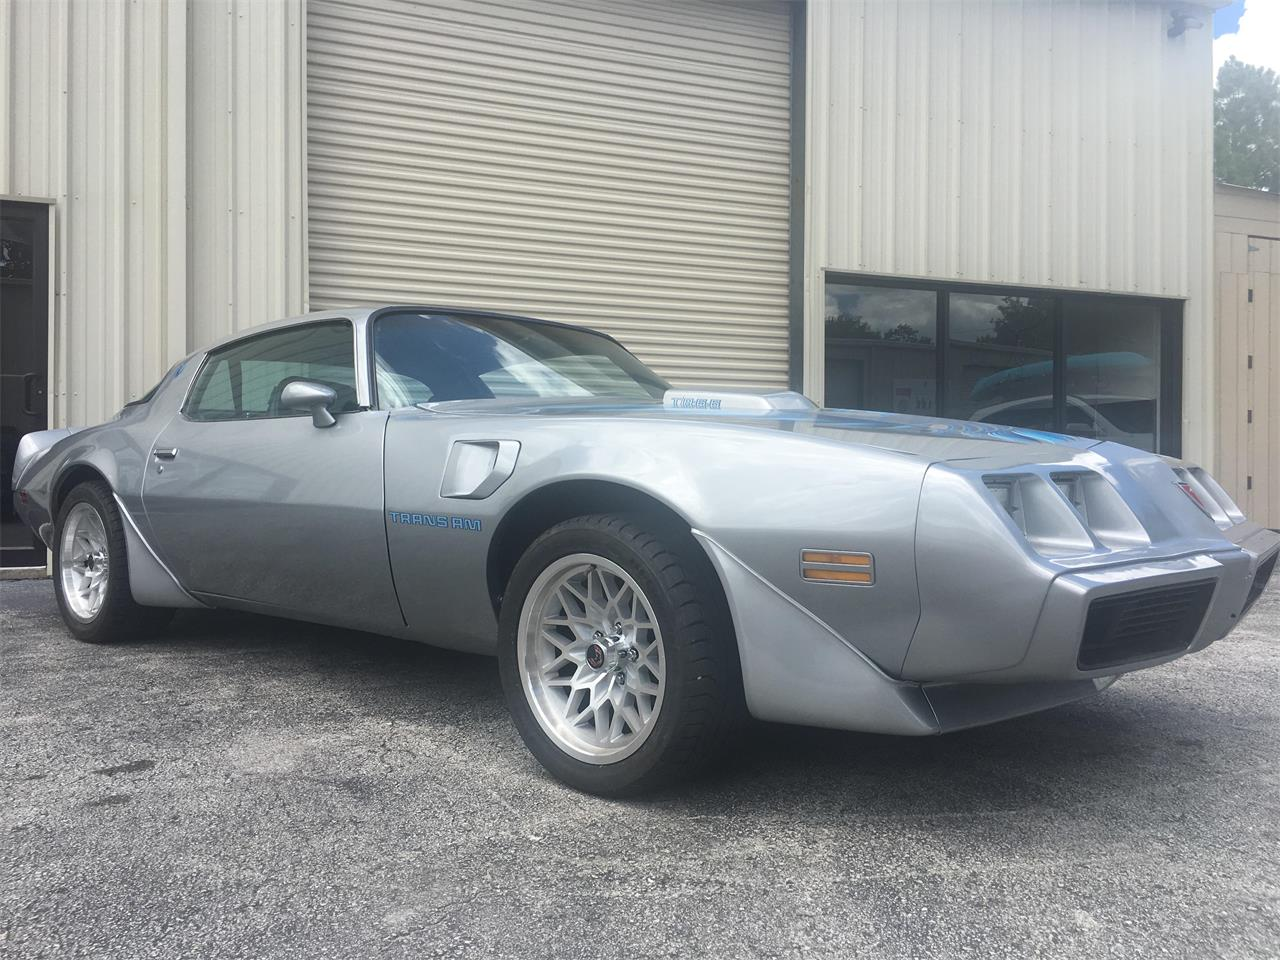 1981 Pontiac Firebird Trans Am for sale in Ponte Verda Beach, FL – photo 8